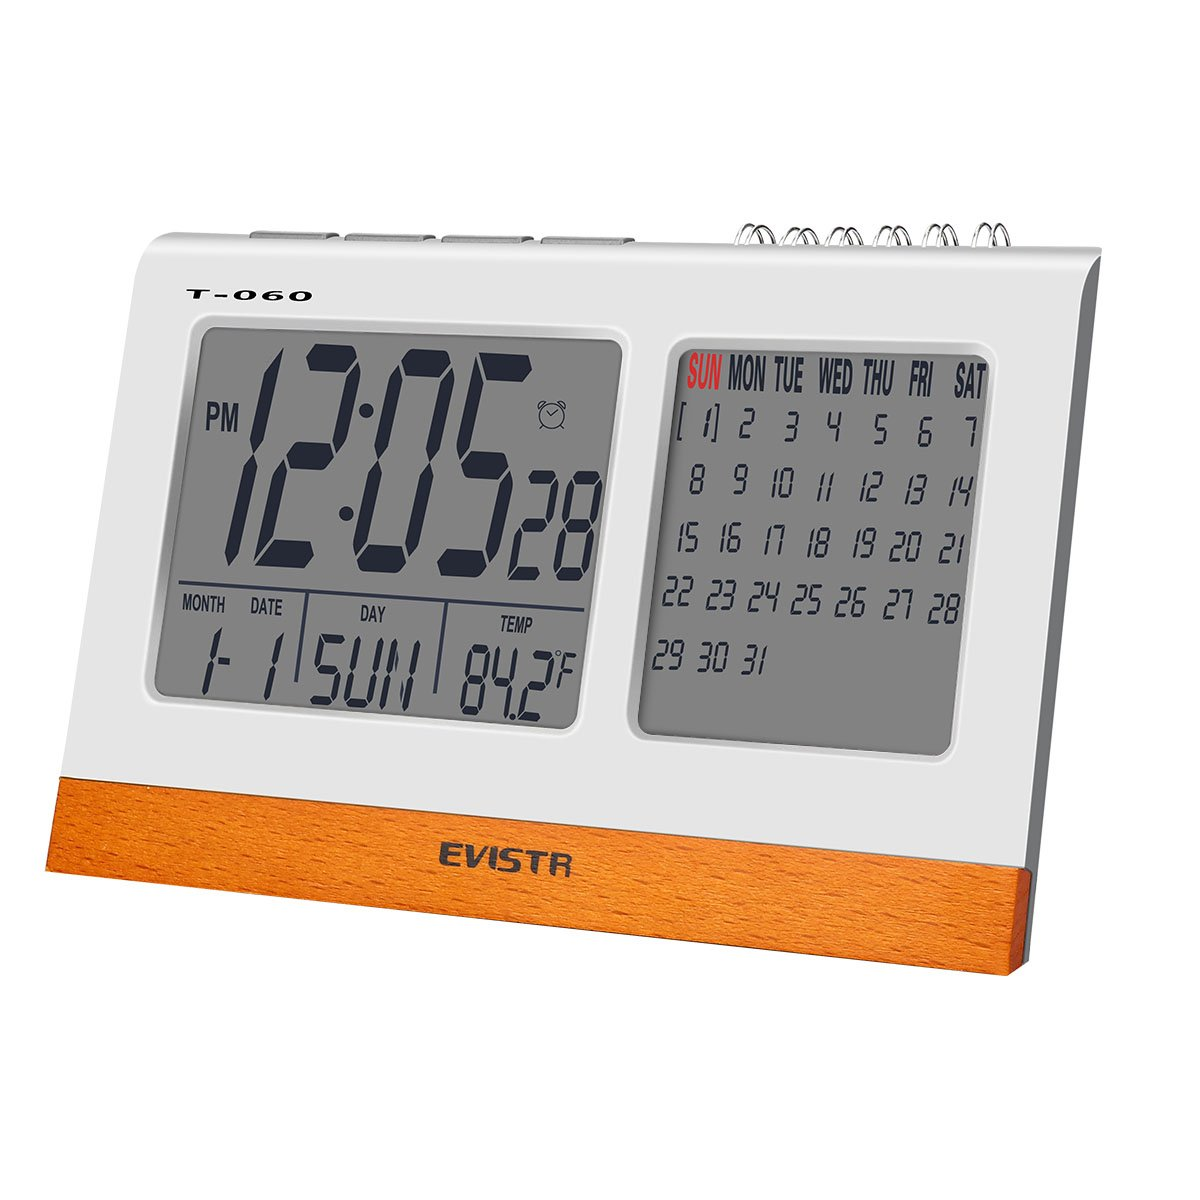 EVISTR Digital Clock Large Display - Desk Clock Battery Operated Alarm Clock with Calendar, Date, Temperature for Office